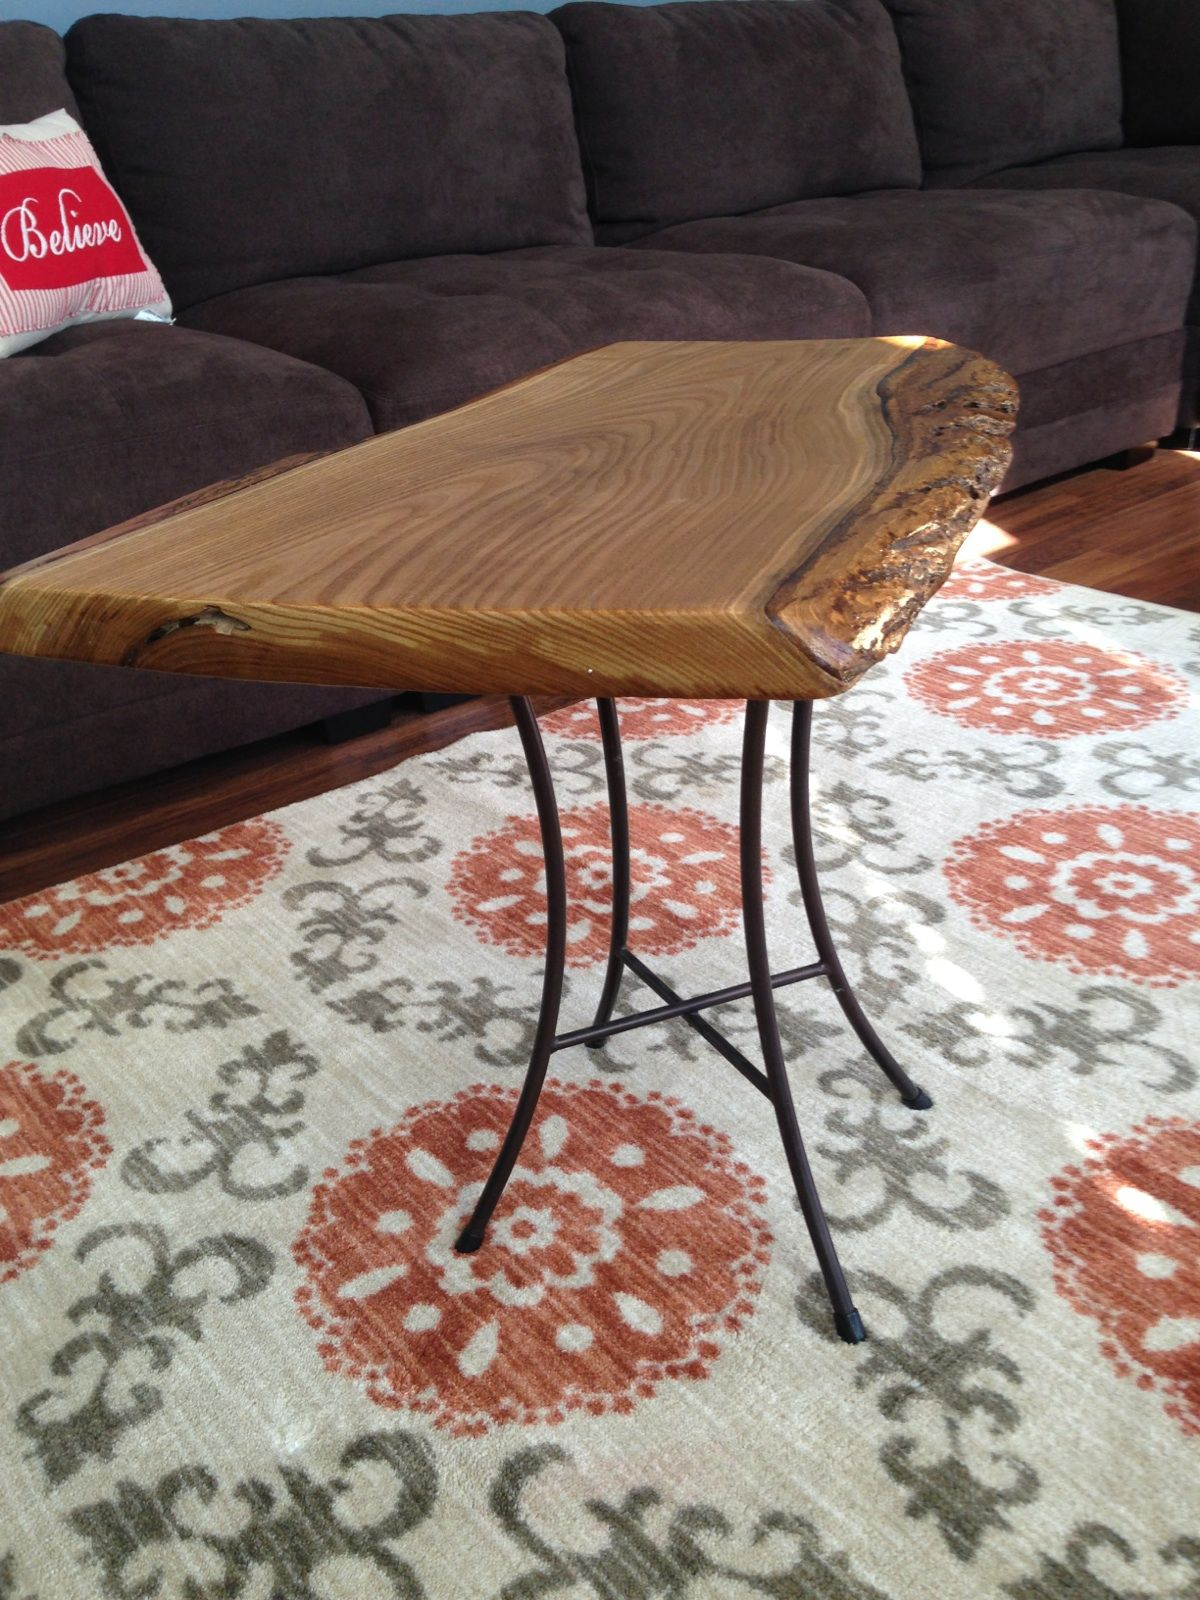 Catalpa end table with aluminum legs sale item